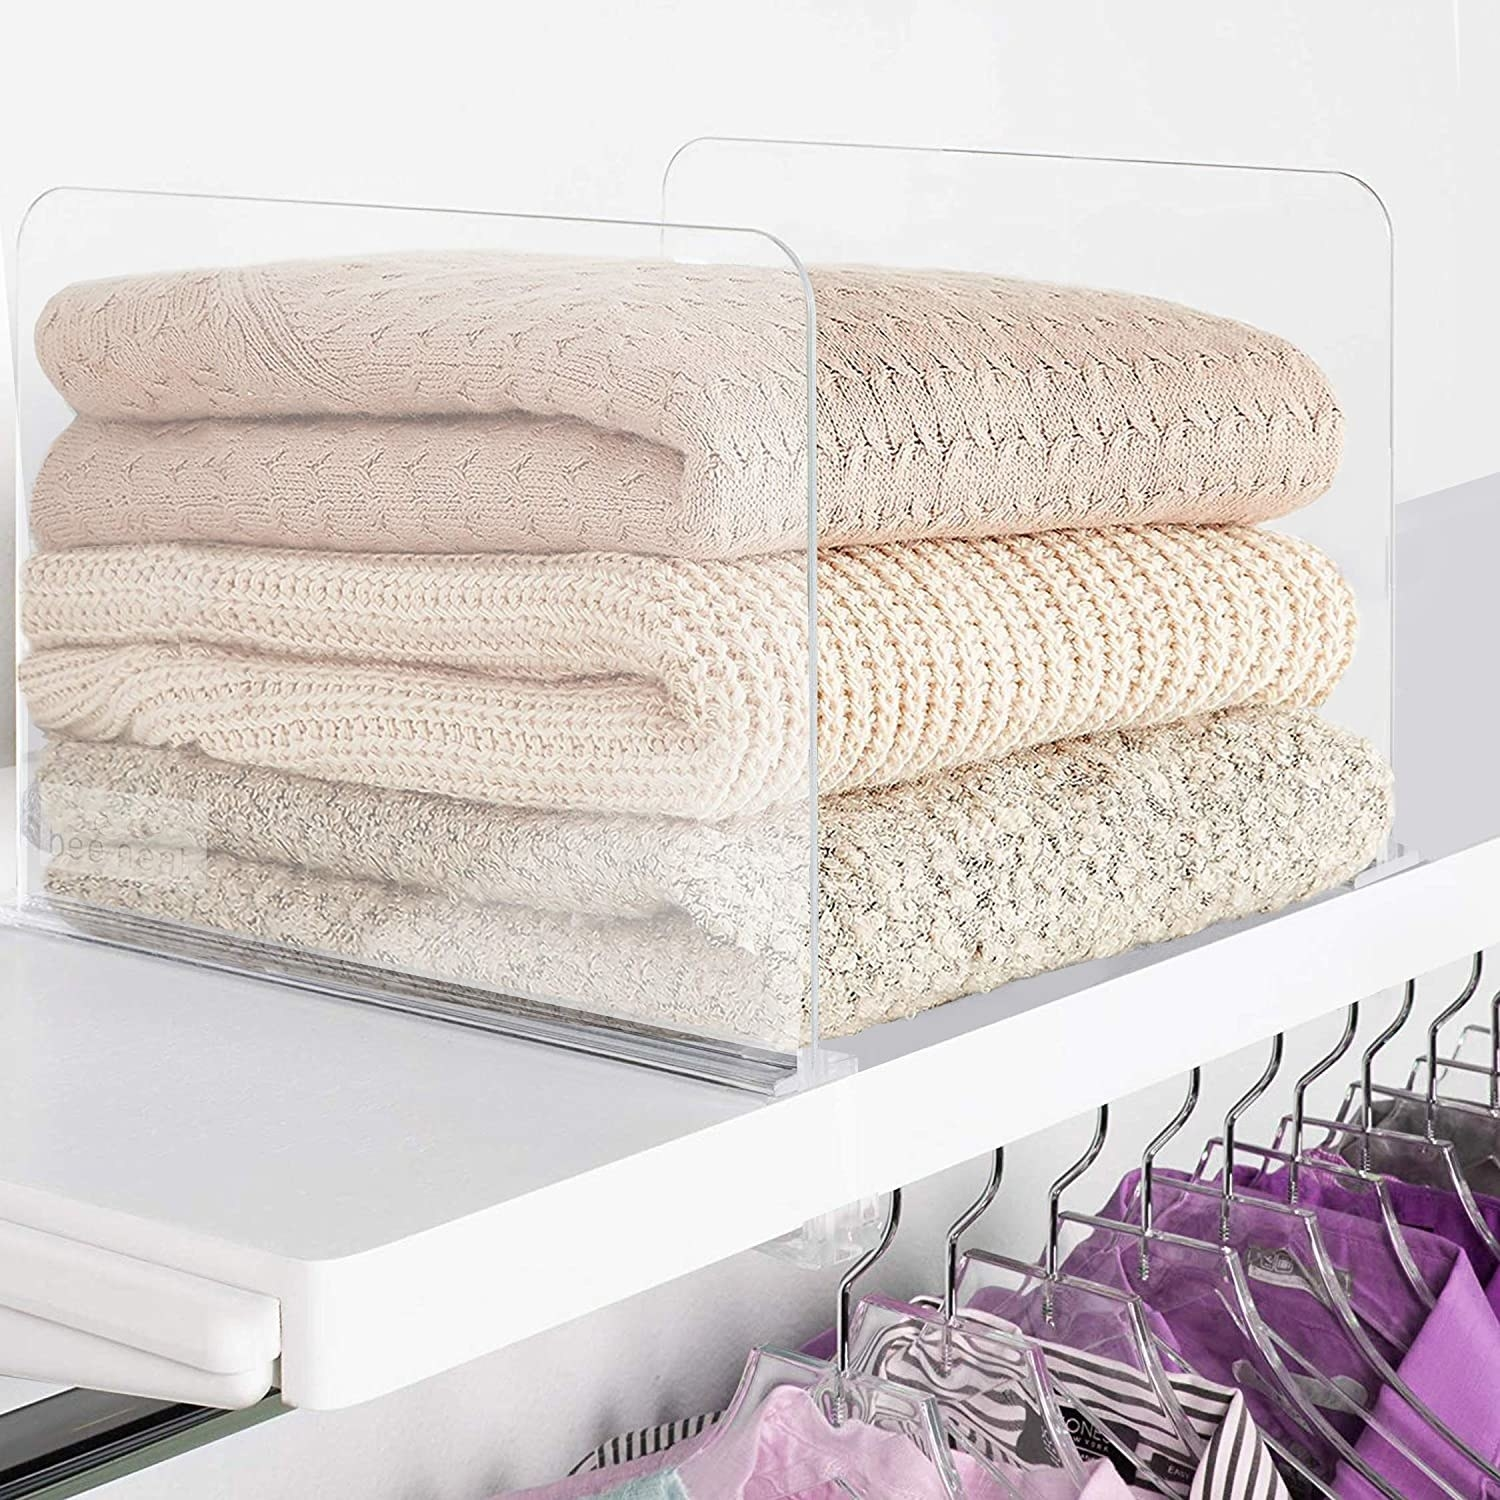 clear dividers holding up sweaters on a shelf